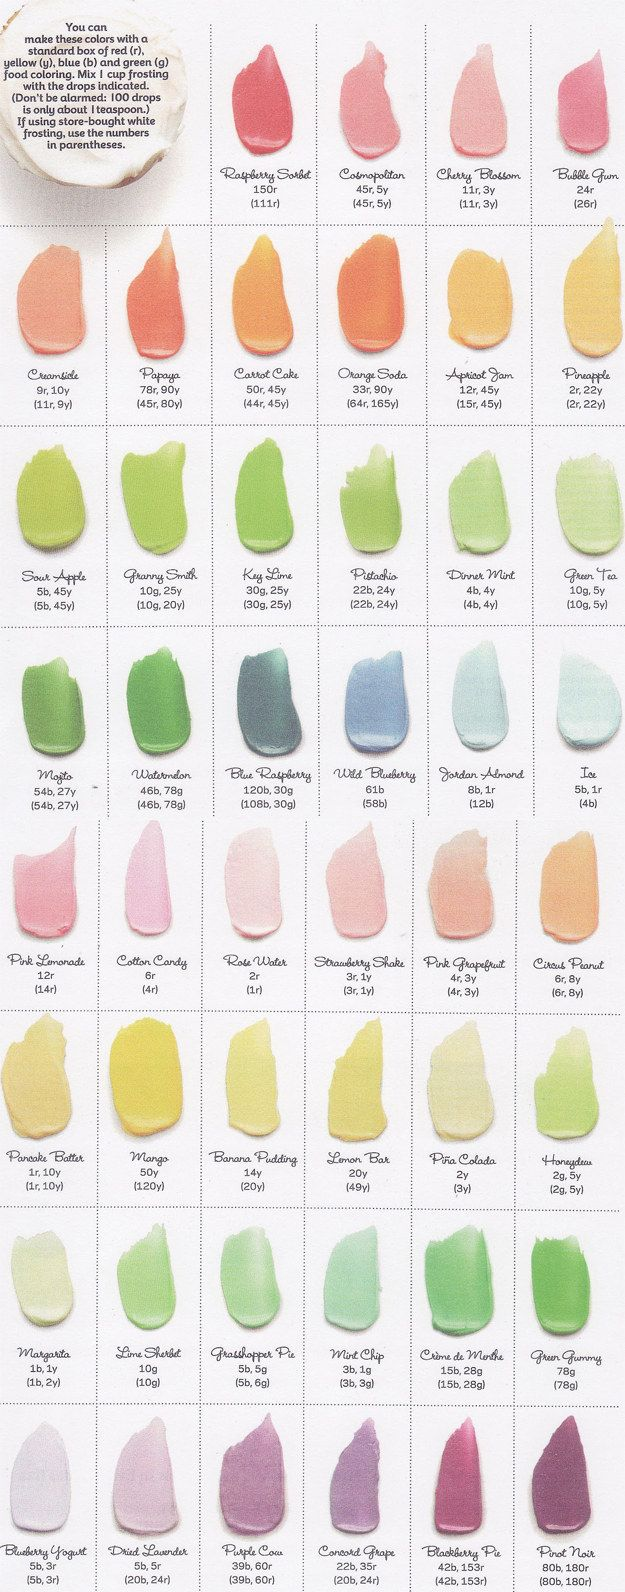 How to make frosting colors - Food Coloring Mix Guide